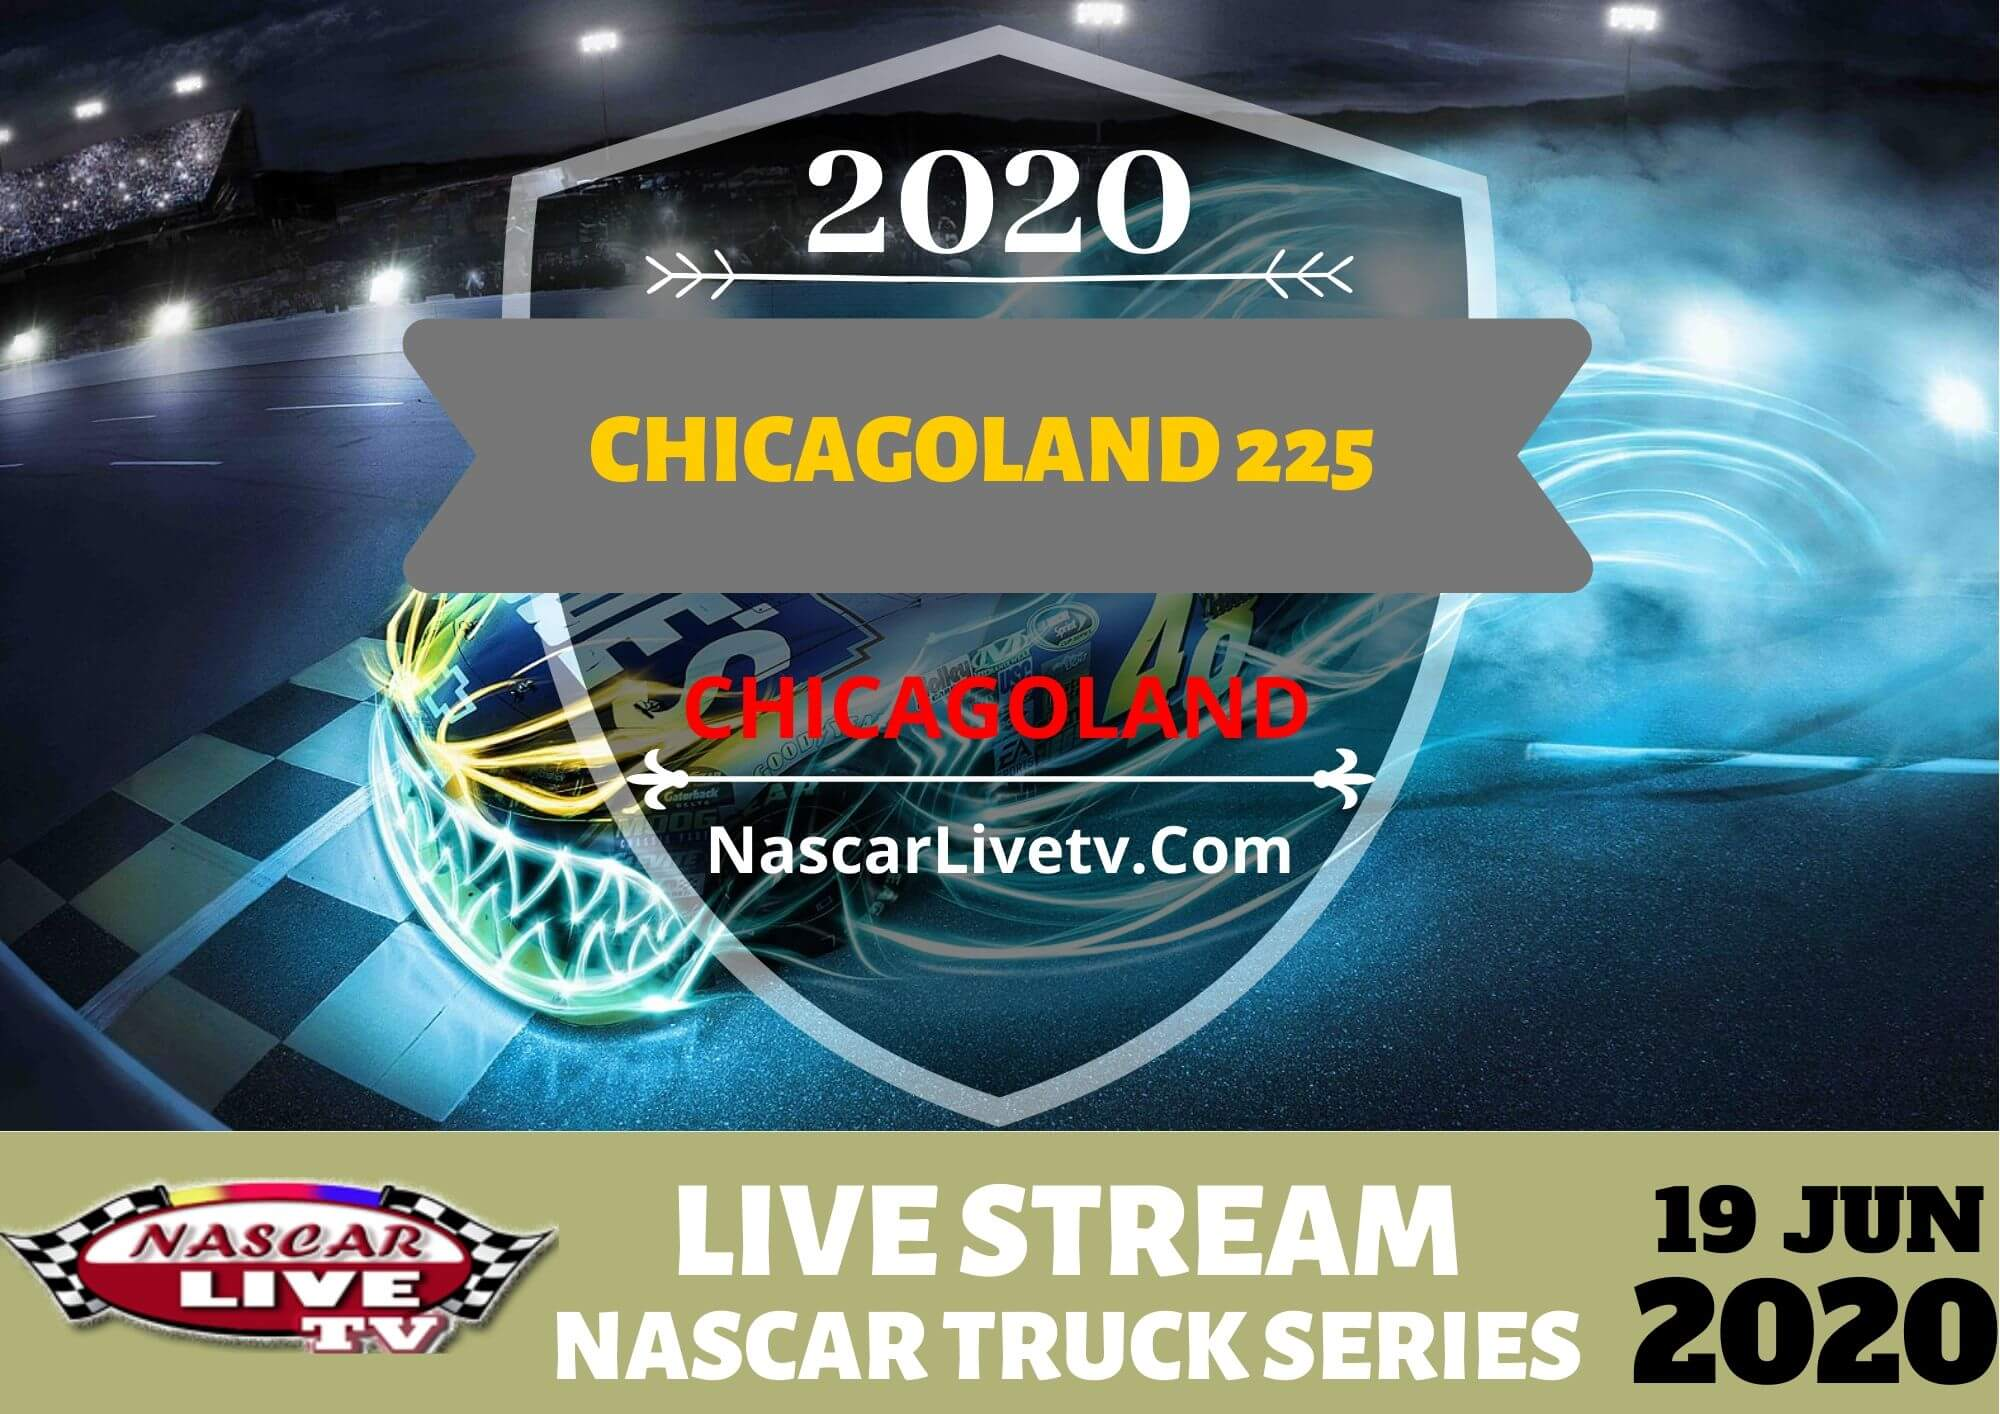 Chicagoland 225 Practice 1 Live Stream 2020 | Gander Outdoors Truck Series